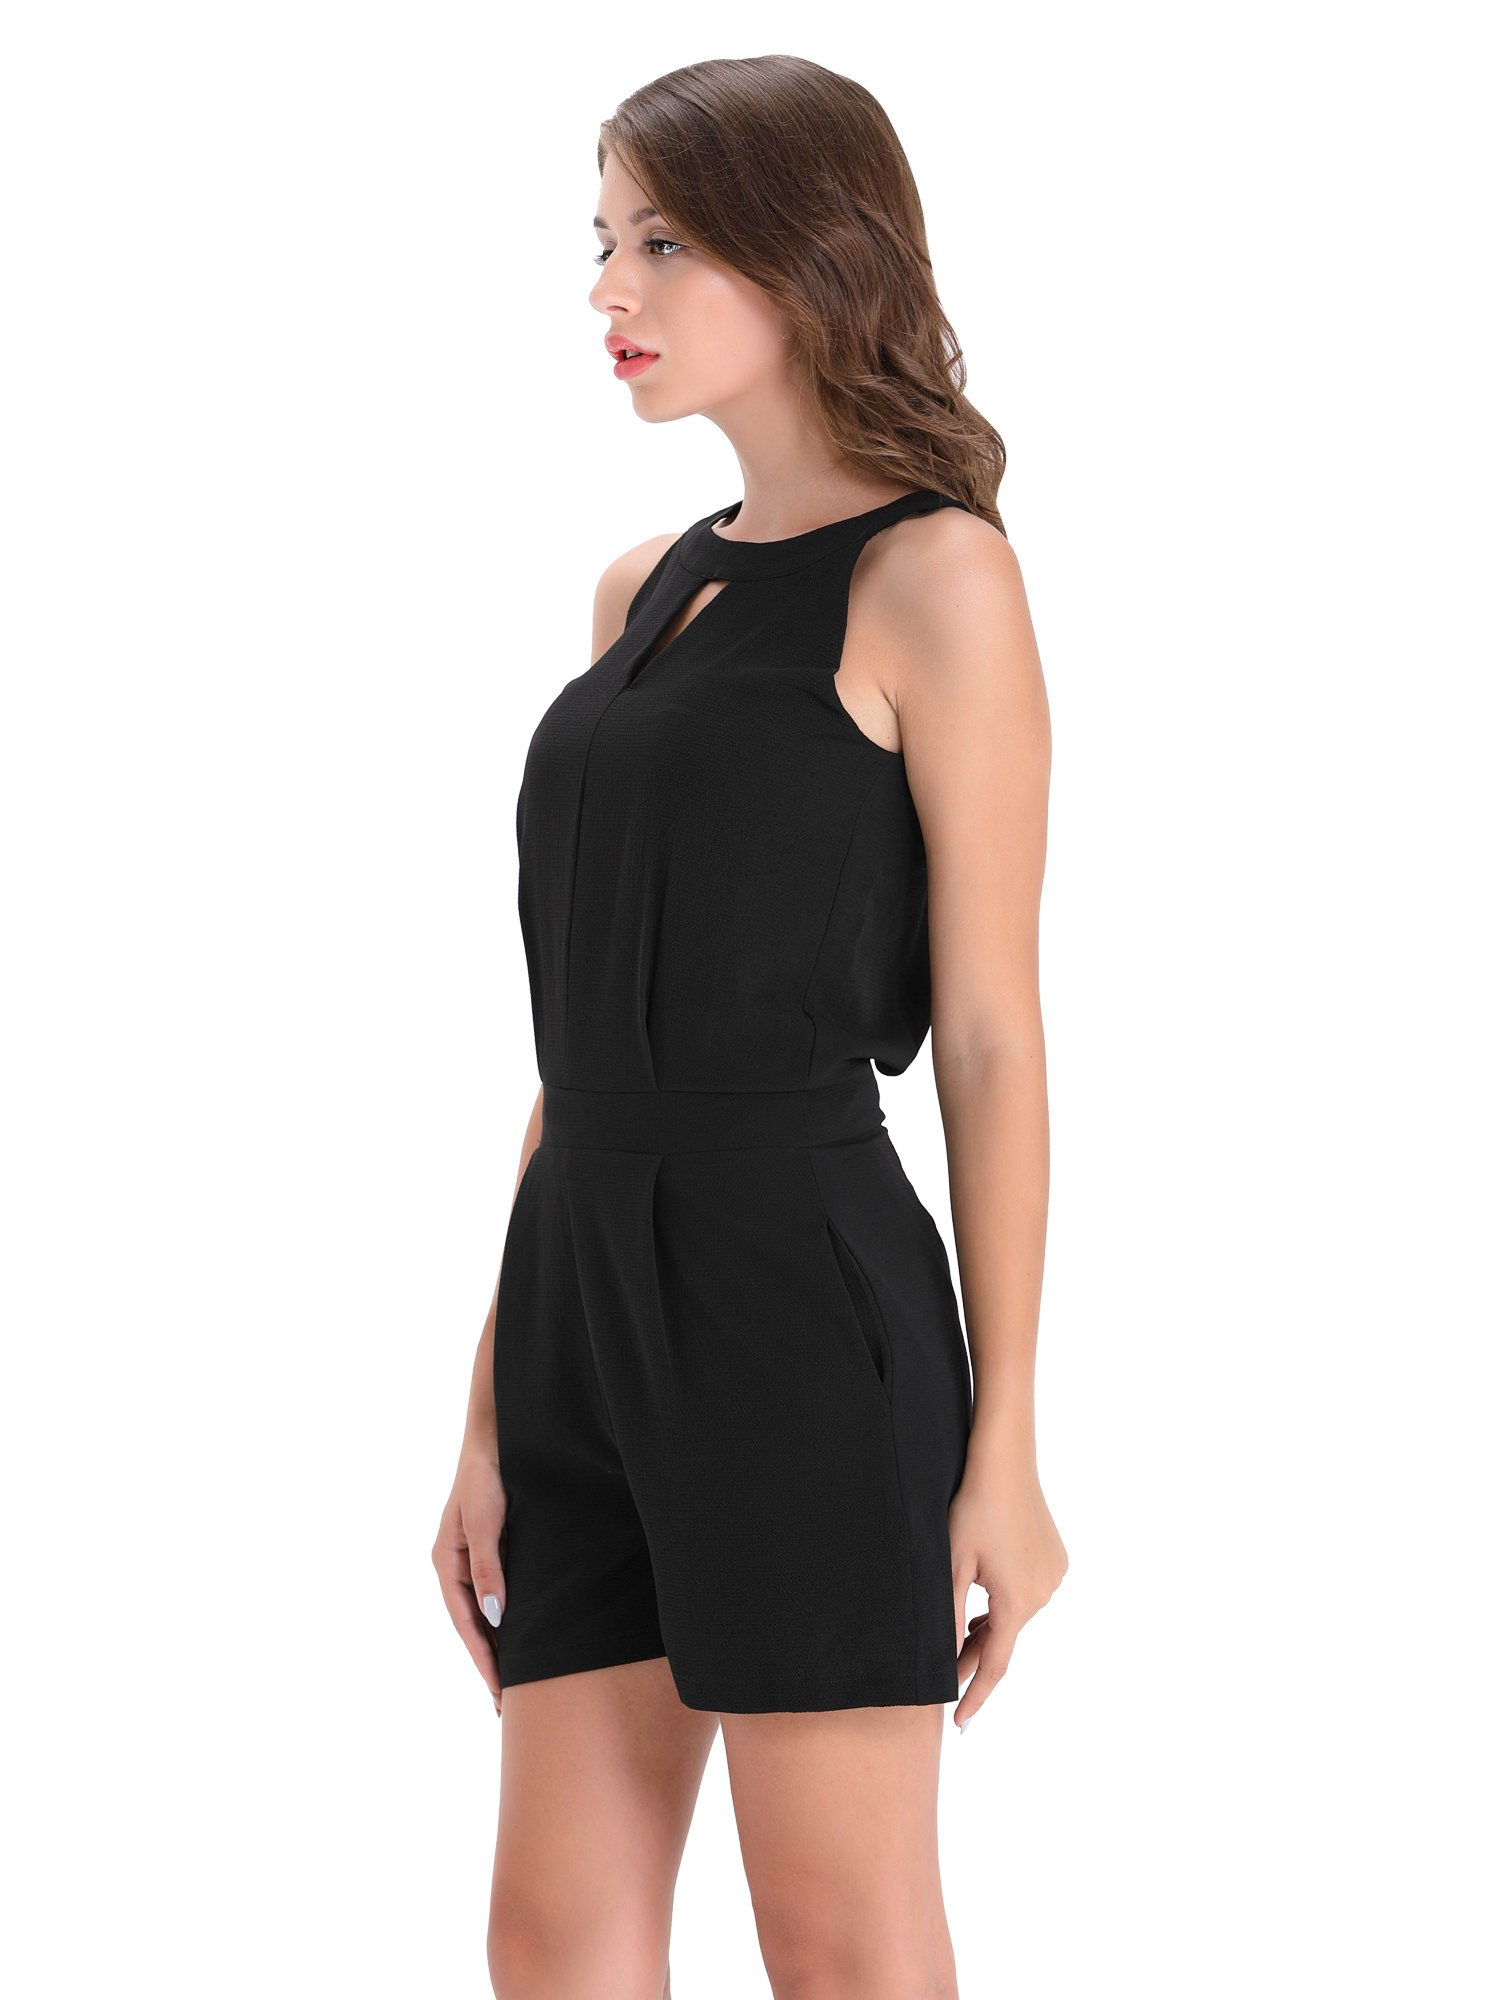 BARGOOS Women All-Black Cut Out Halter Neck Rompers Sleeveless Playsuit Summer Casual High Waist Mini Jumpsuits by BARGOOS (Image #4)